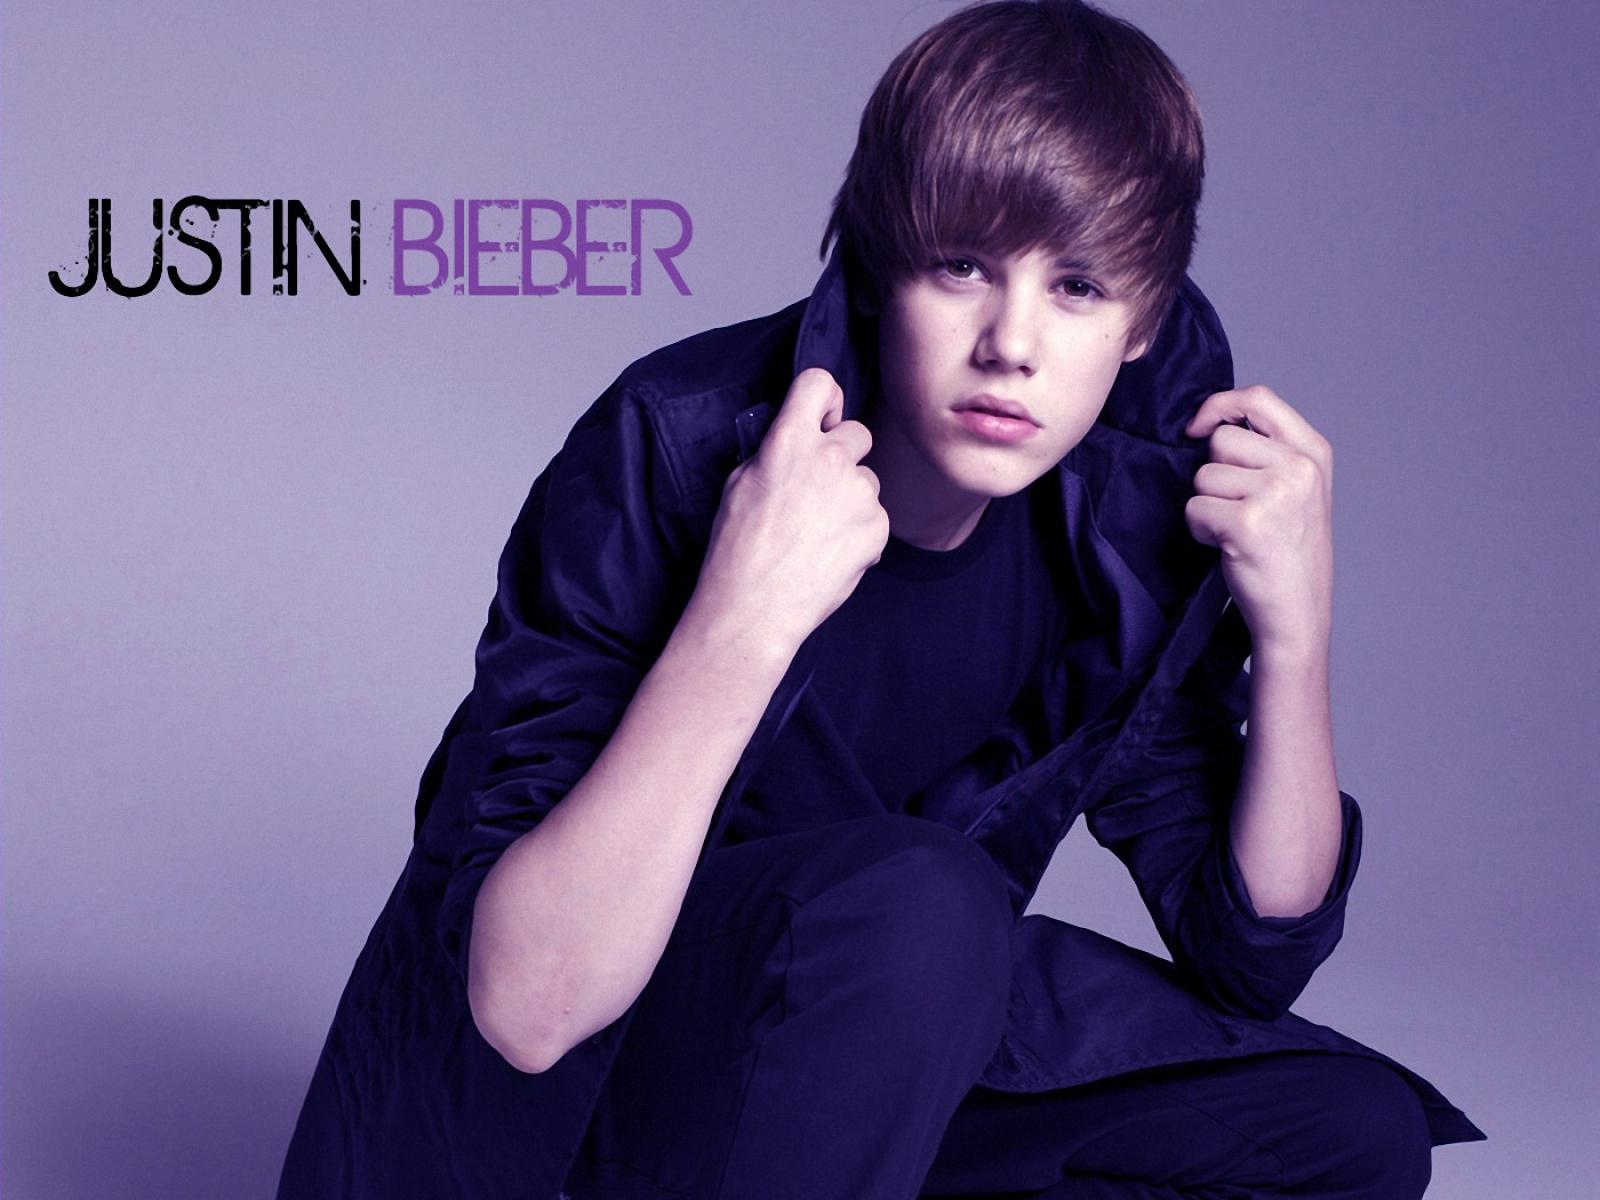 Justin Bieber Wallpapers Hd 2015 Wallpaper Cave